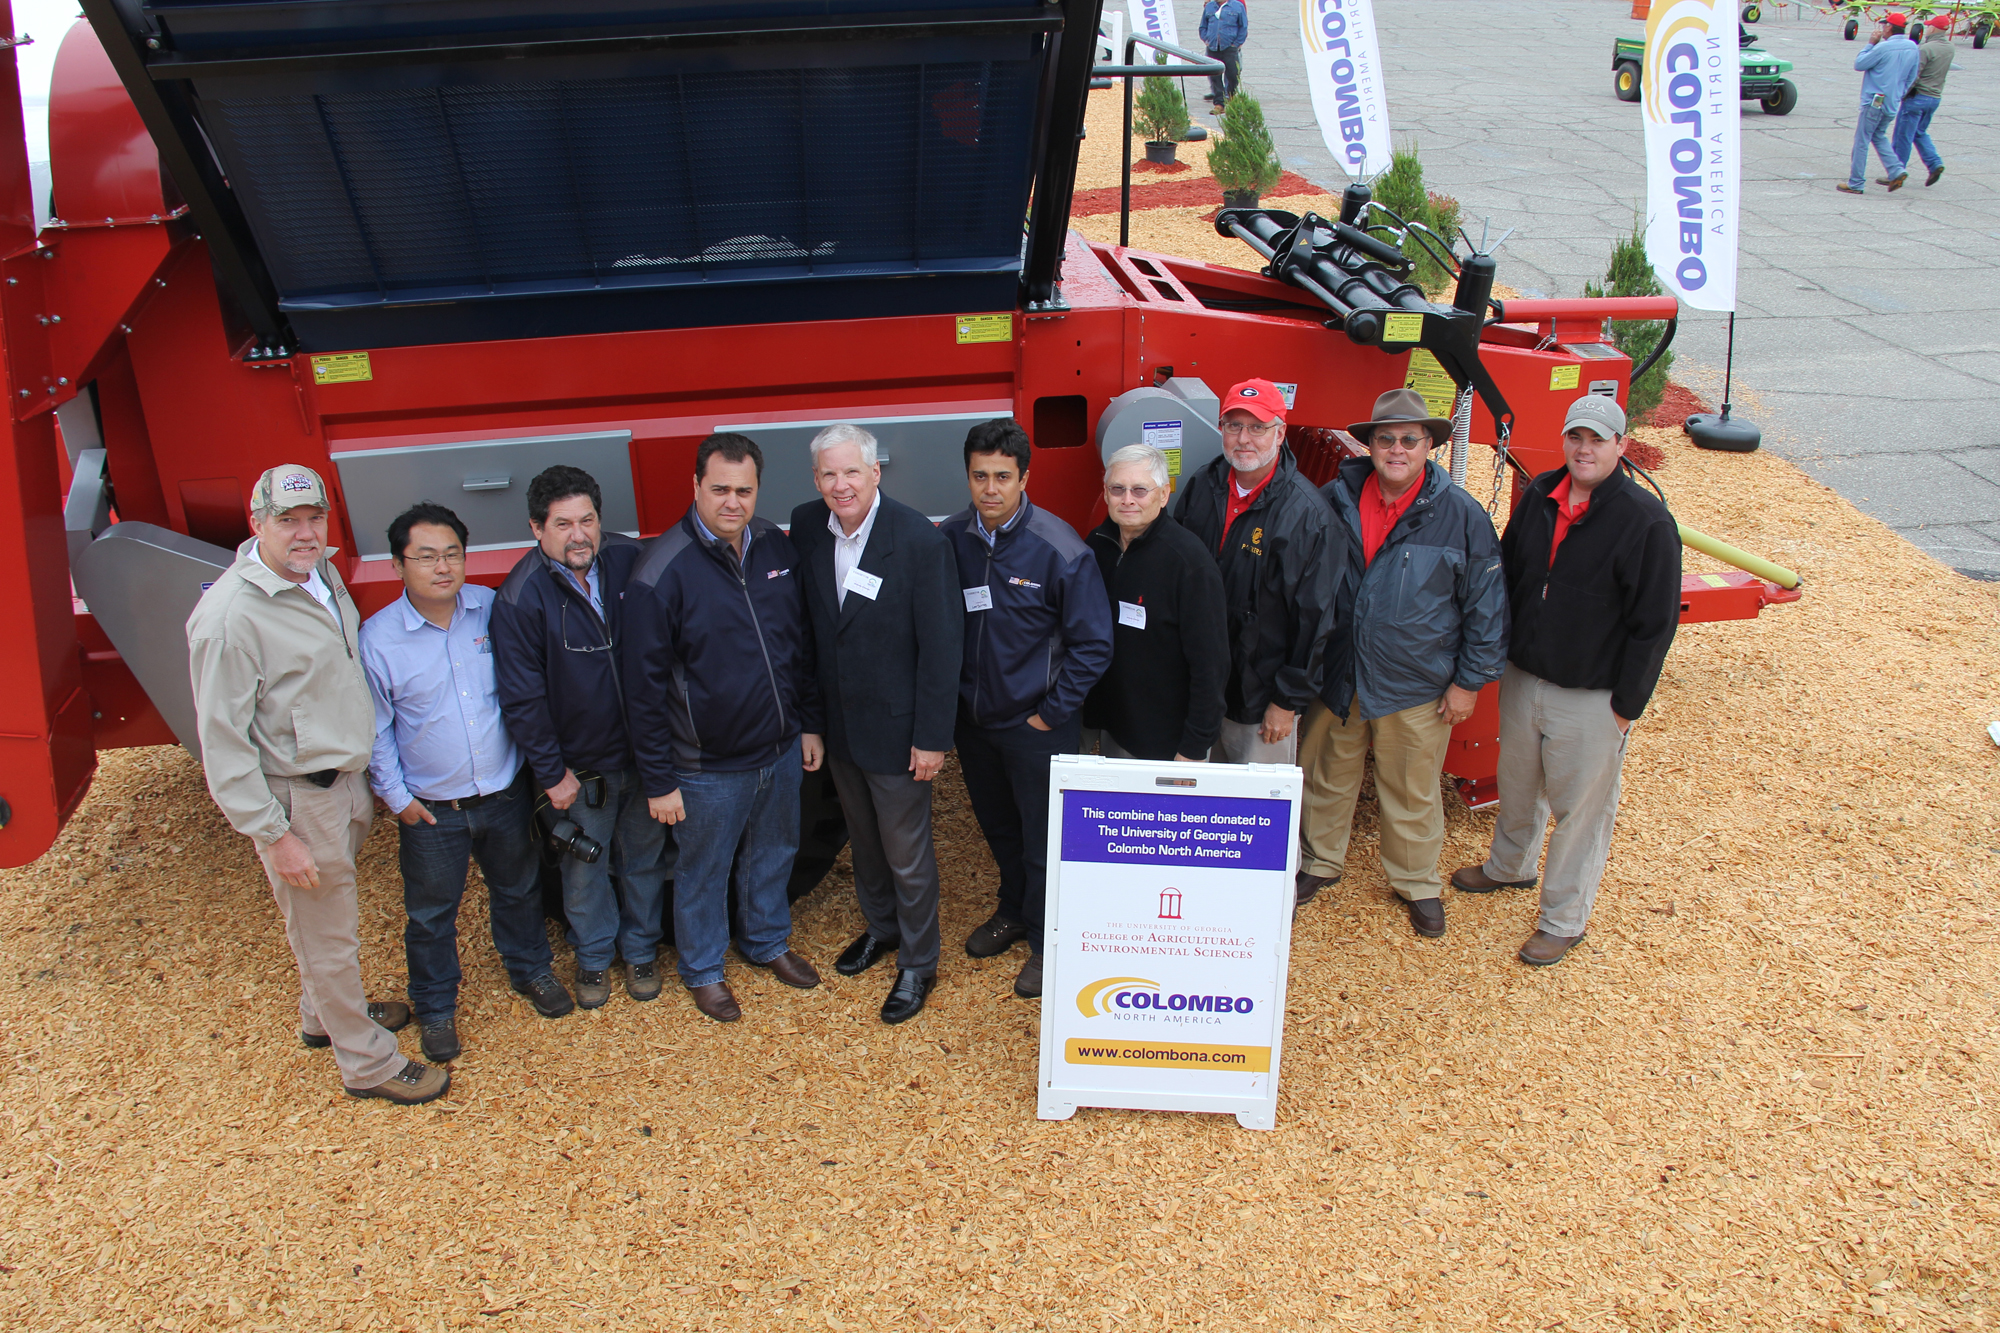 UGA CAES dean and director Scott Angle, center left, accepted a $65,000 two-row peanut combine from Colombo, a Brazilian farm equipment manufacturer, at the 2011 Sunbelt Ag Expo in Moultrie, Ga., Oct. 19. The donated picker will be used for research on the UGA C.M. Stripling Irrigation Research Park in Camilla, Ga.